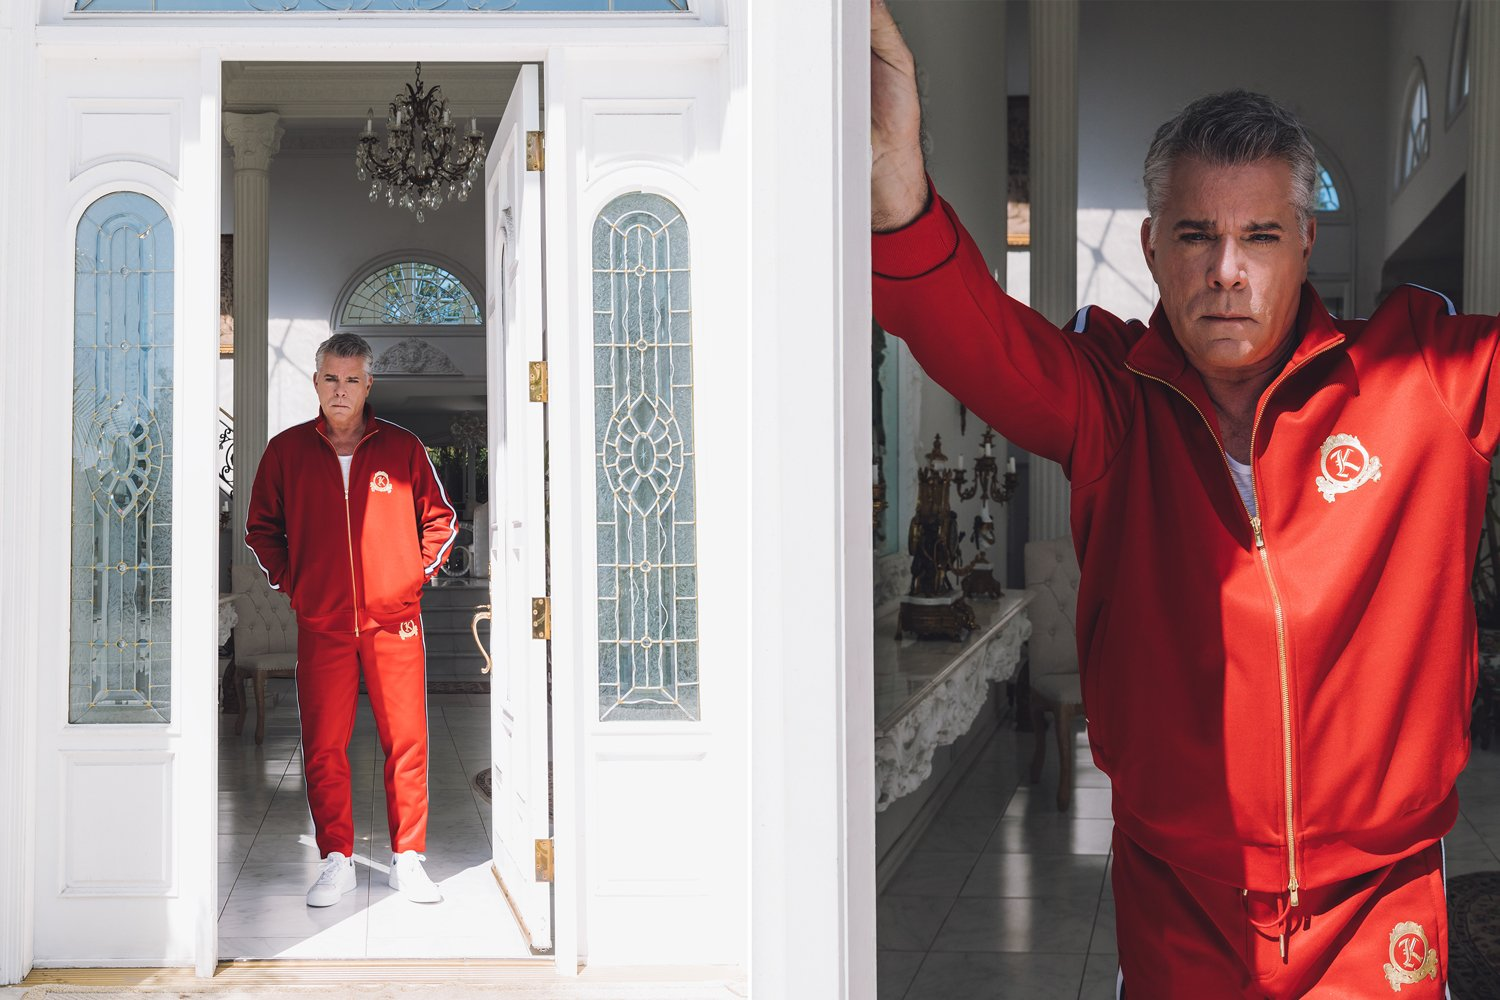 Developed Branding identity with our graphics team for Kith Spring / Summer 2018 Tracksuit Program with Bergdorf Goodman.  Modeled by Ray Liotta